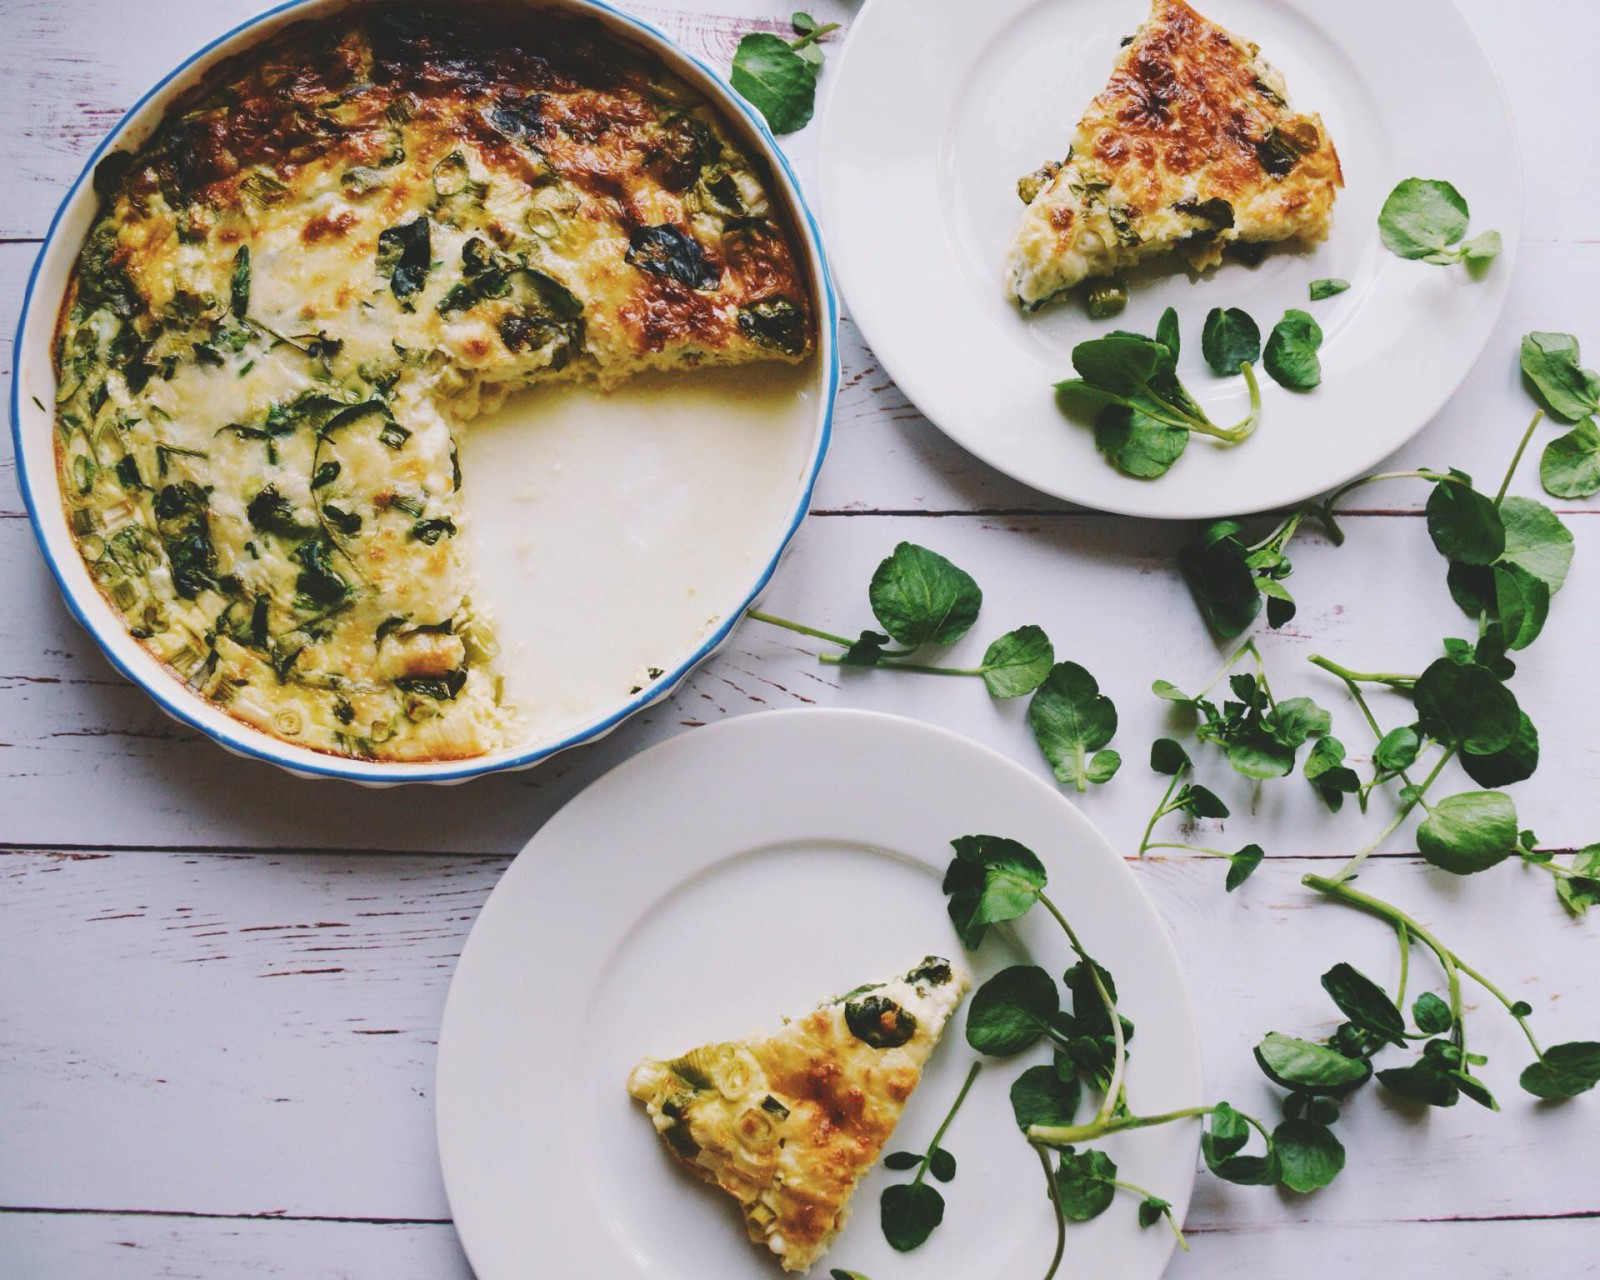 Goat's cheese, spring onion & watercress crustless quiche